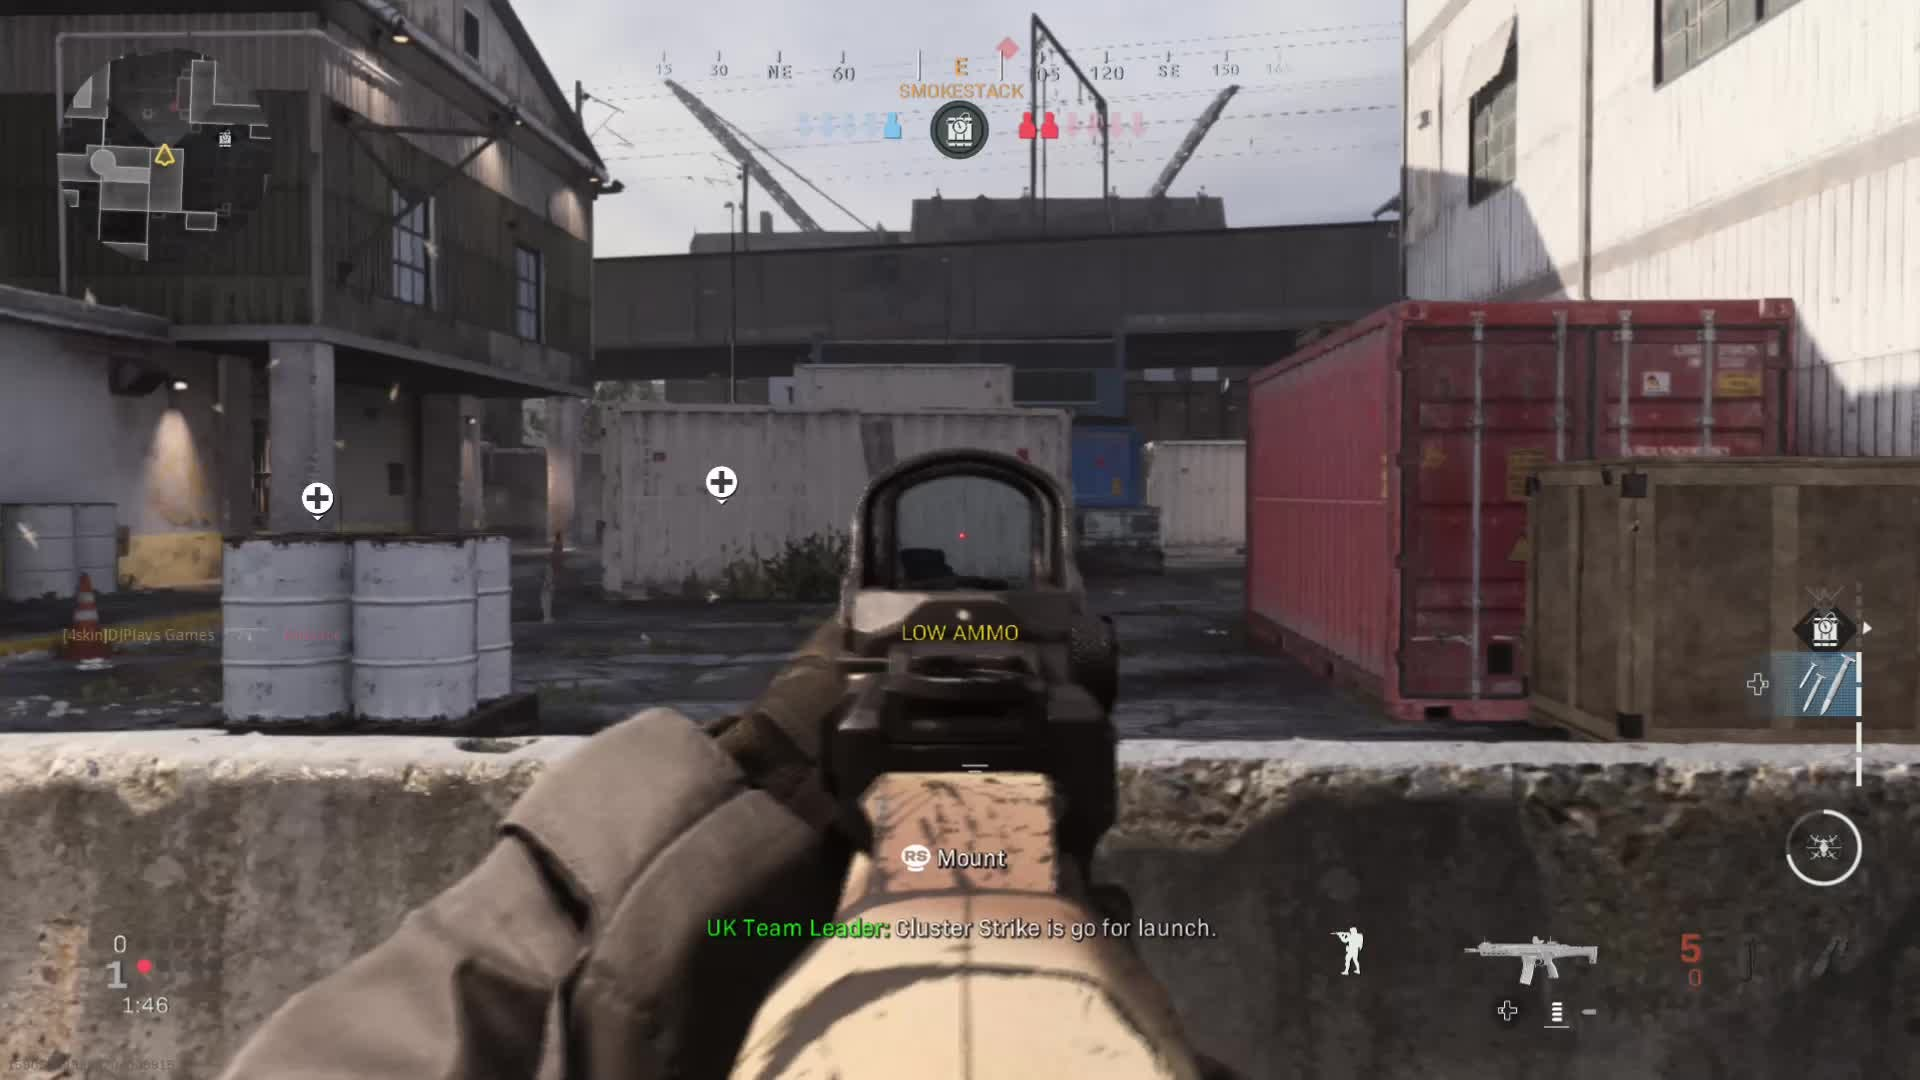 Call of Duty: POTG - Cyber Attack 1 v 3  video cover image 1